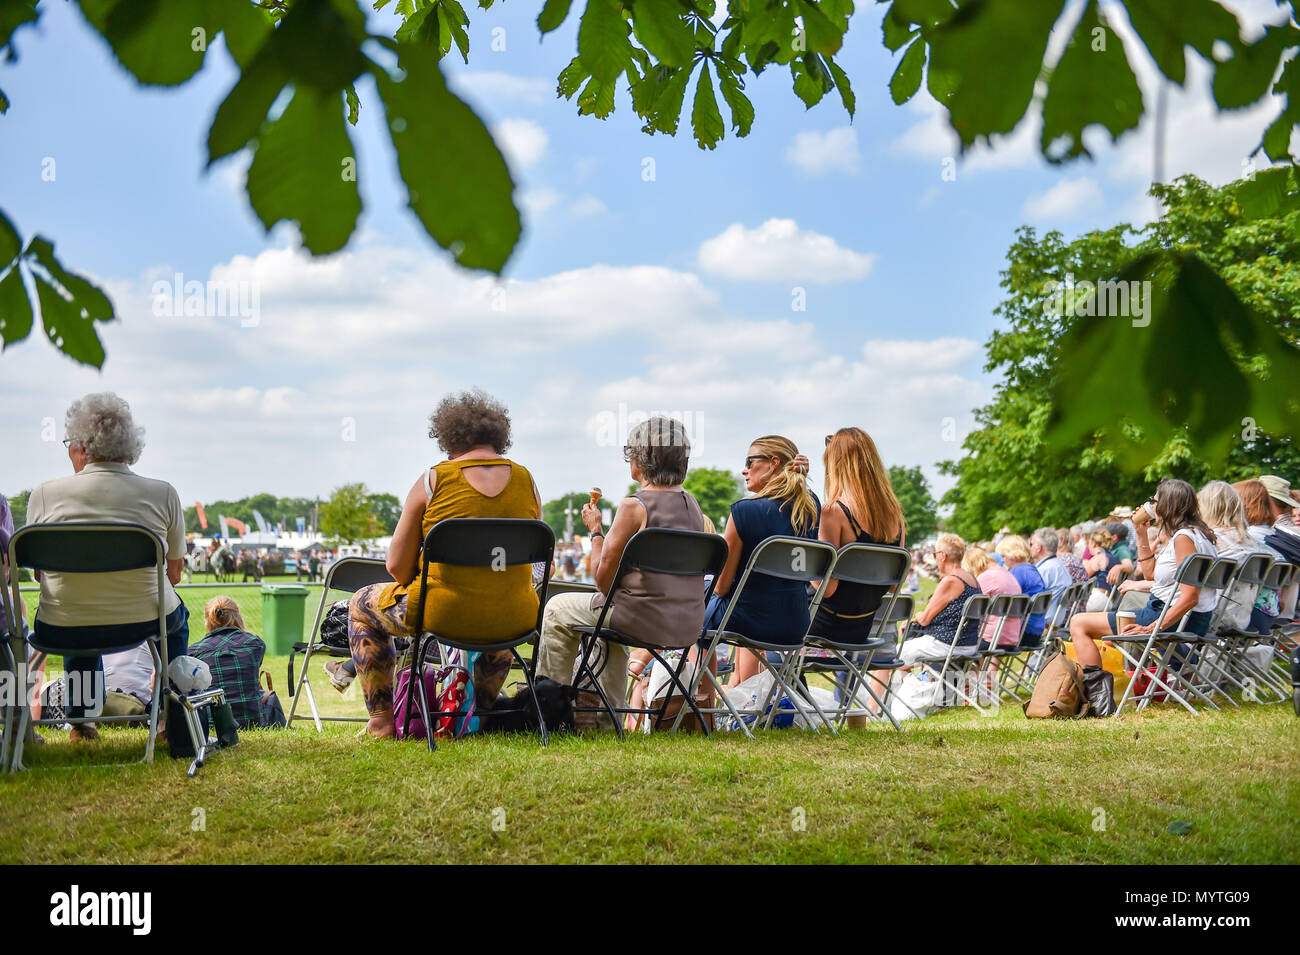 Ardingly Sussex UK 8th June 2018 - Crowds enjoy the sunshine at the South of England Show  at the Ardingly Showground near Haywards Heath Sussex Photograph by Simon Dack Credit: Simon Dack/Alamy Live News - Stock Image